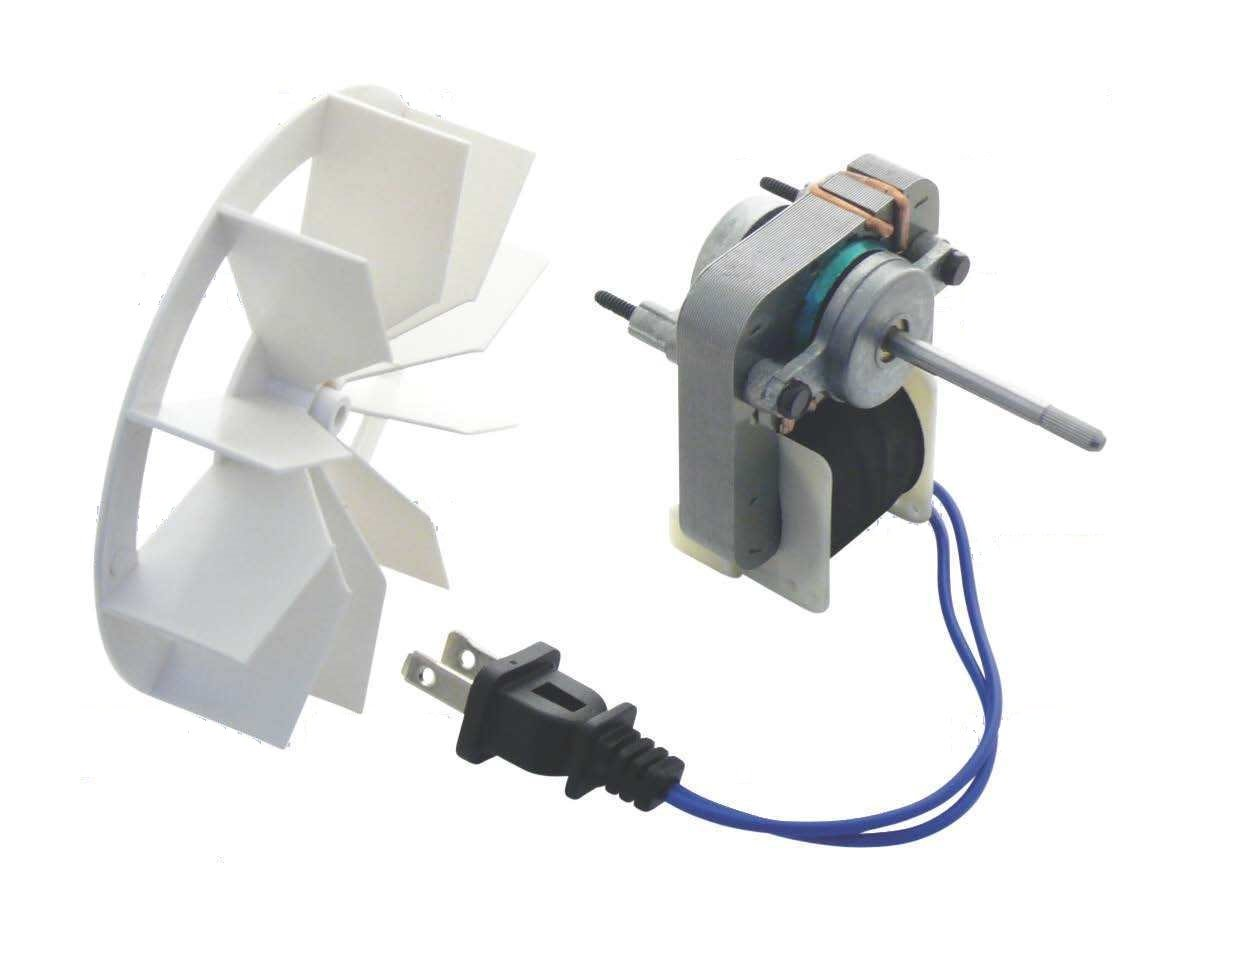 Pokin Ventilation Fan Motor and Blower For Broan part number S99080216 works with the following, Broan ventilation fan models: 659, 662, 663A, 663B, 663C, 663D, 663E, 668, 688, 678, 678B